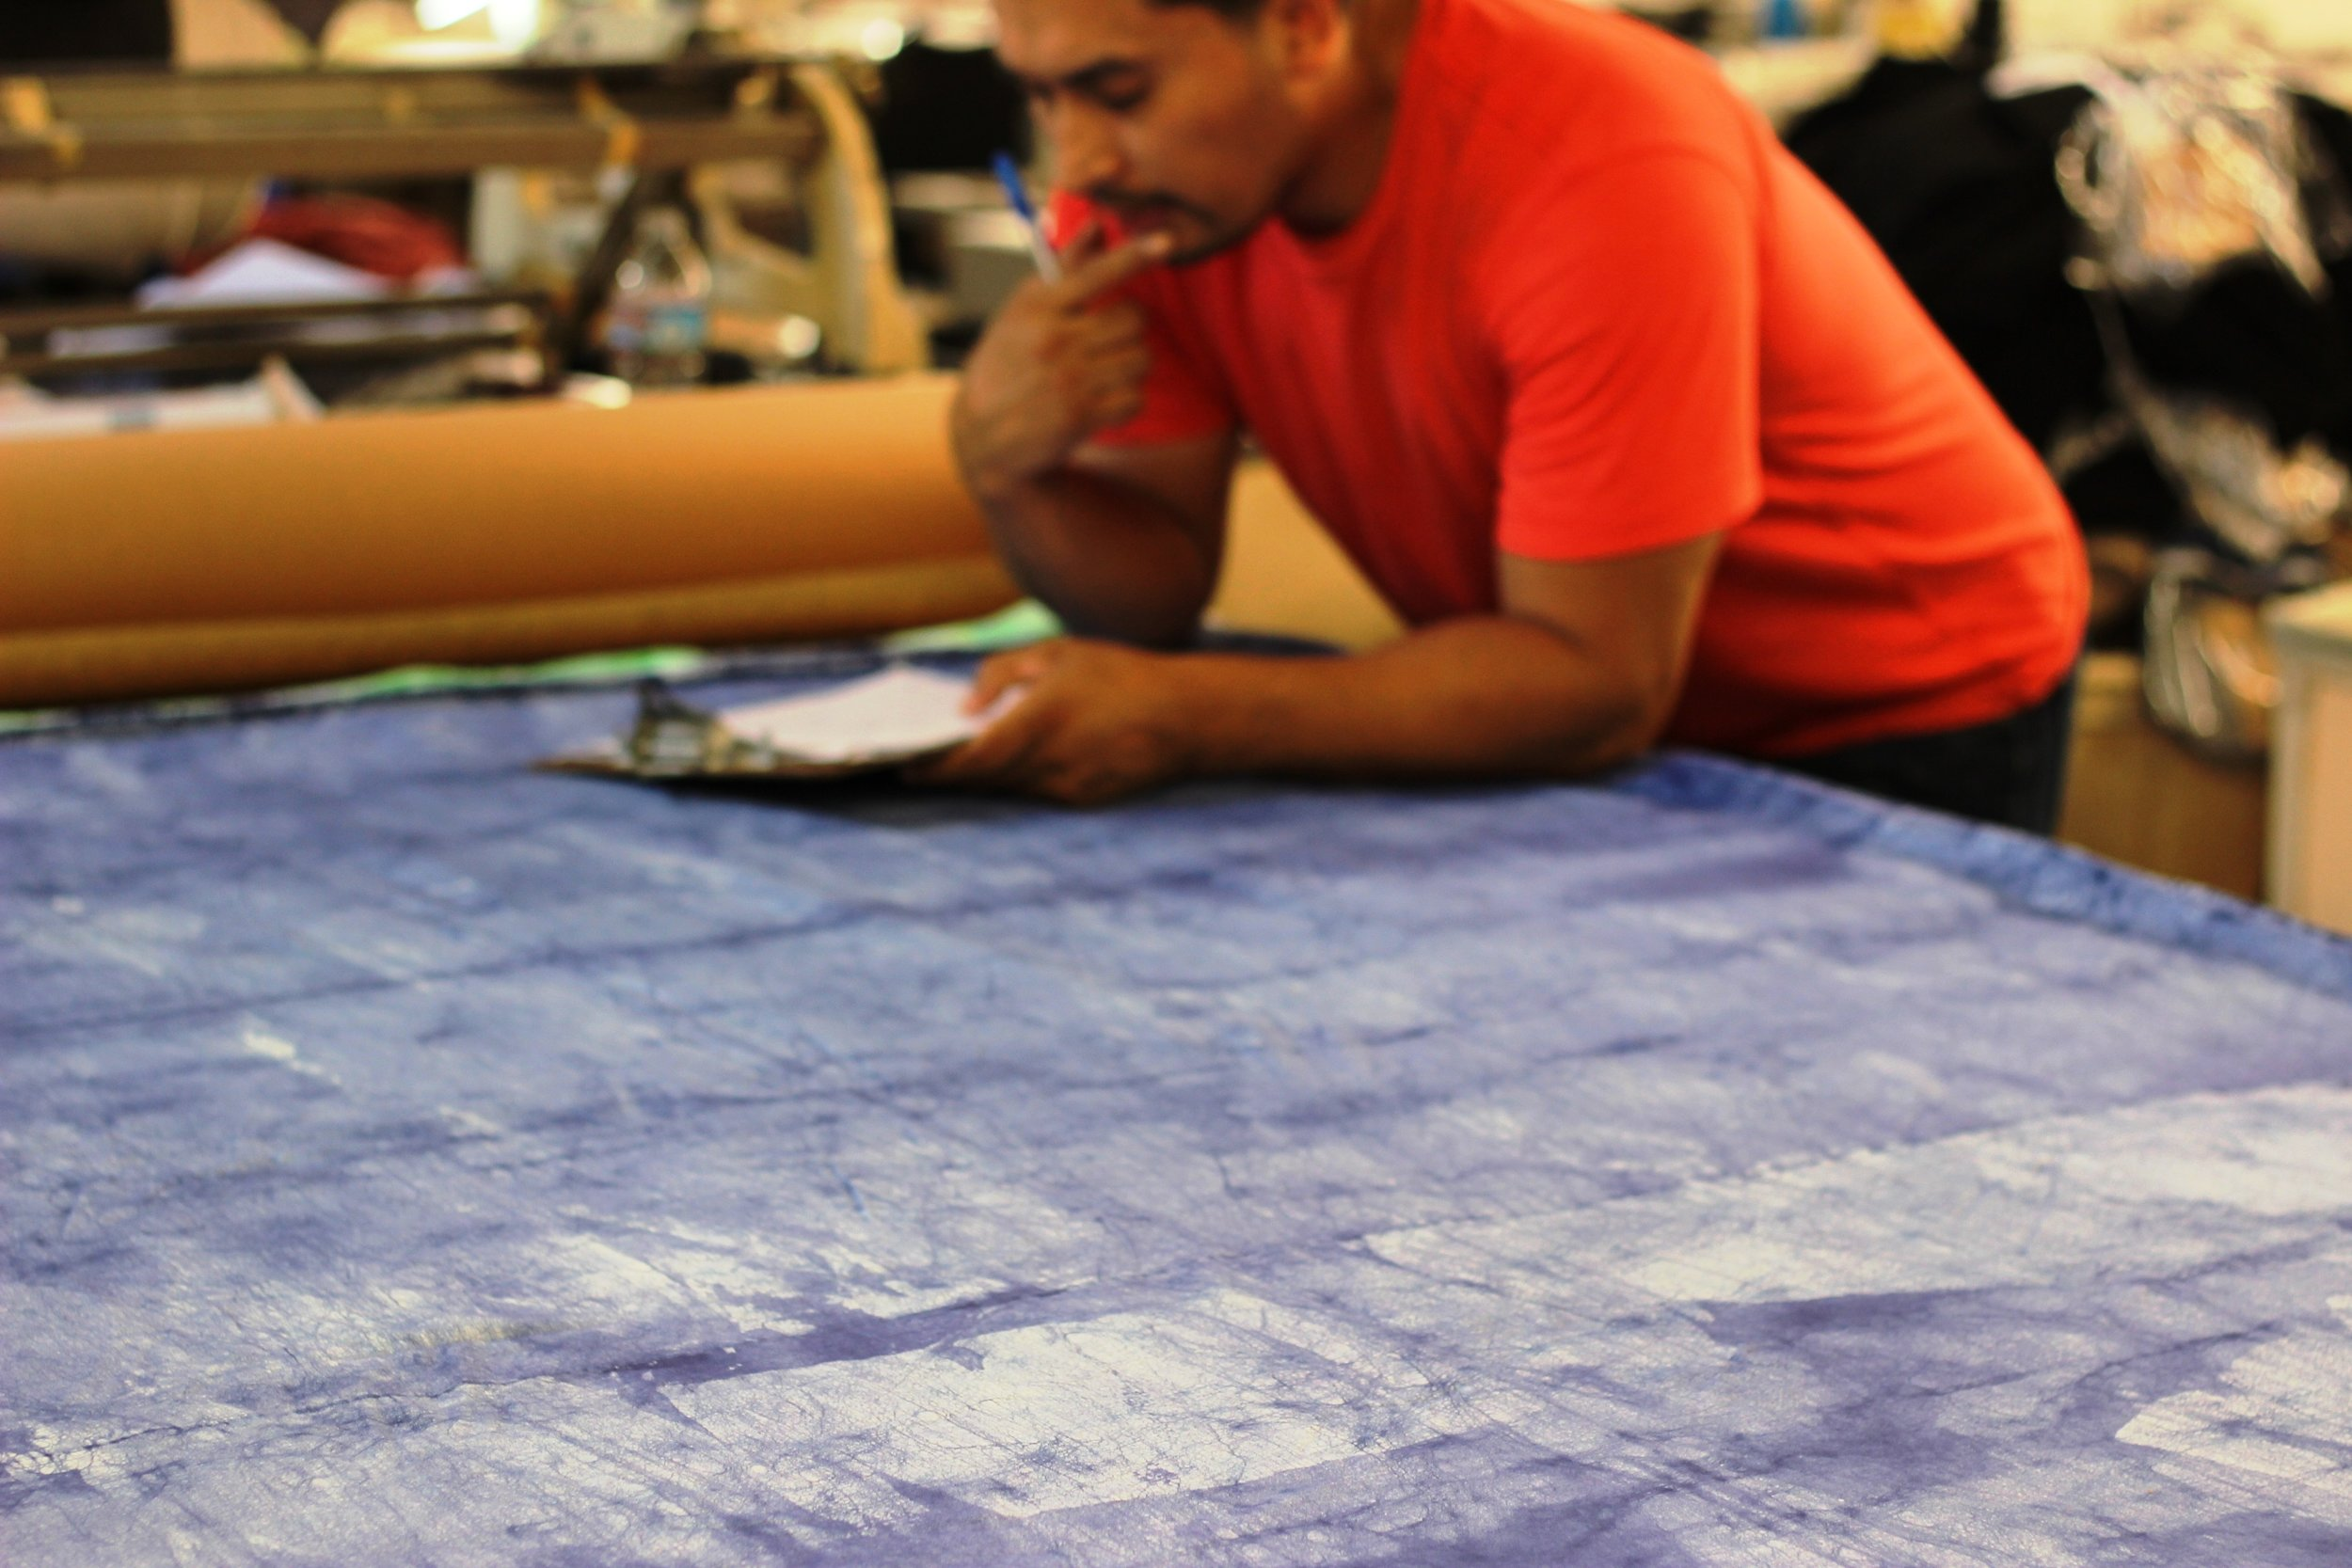 Great care goes into every product we make at kooshoo. Here we plan the cut pattern for the deep lavender headbands for  men  &  women